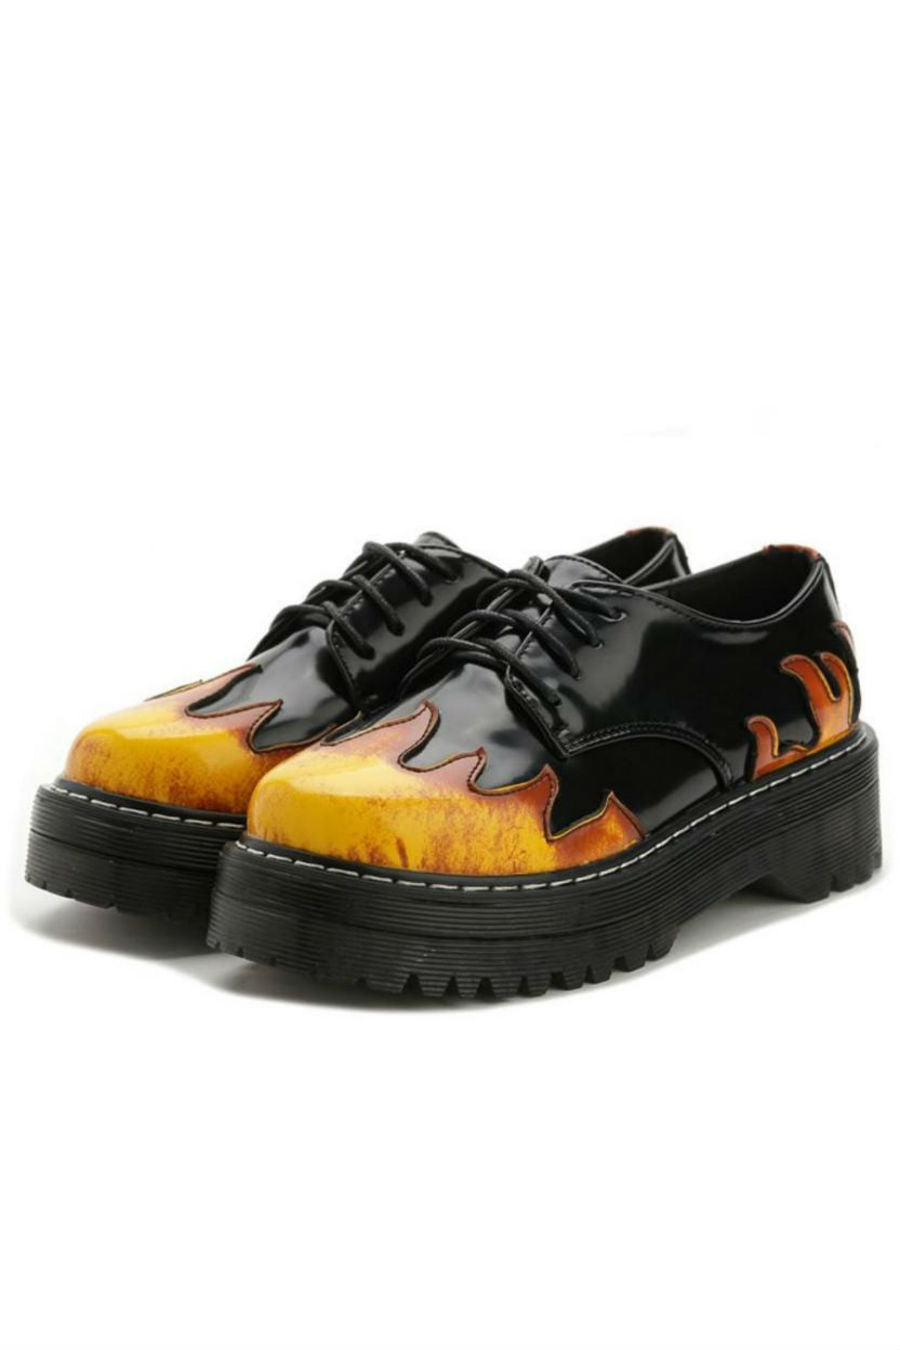 Harajuku Flame Platform Shoes